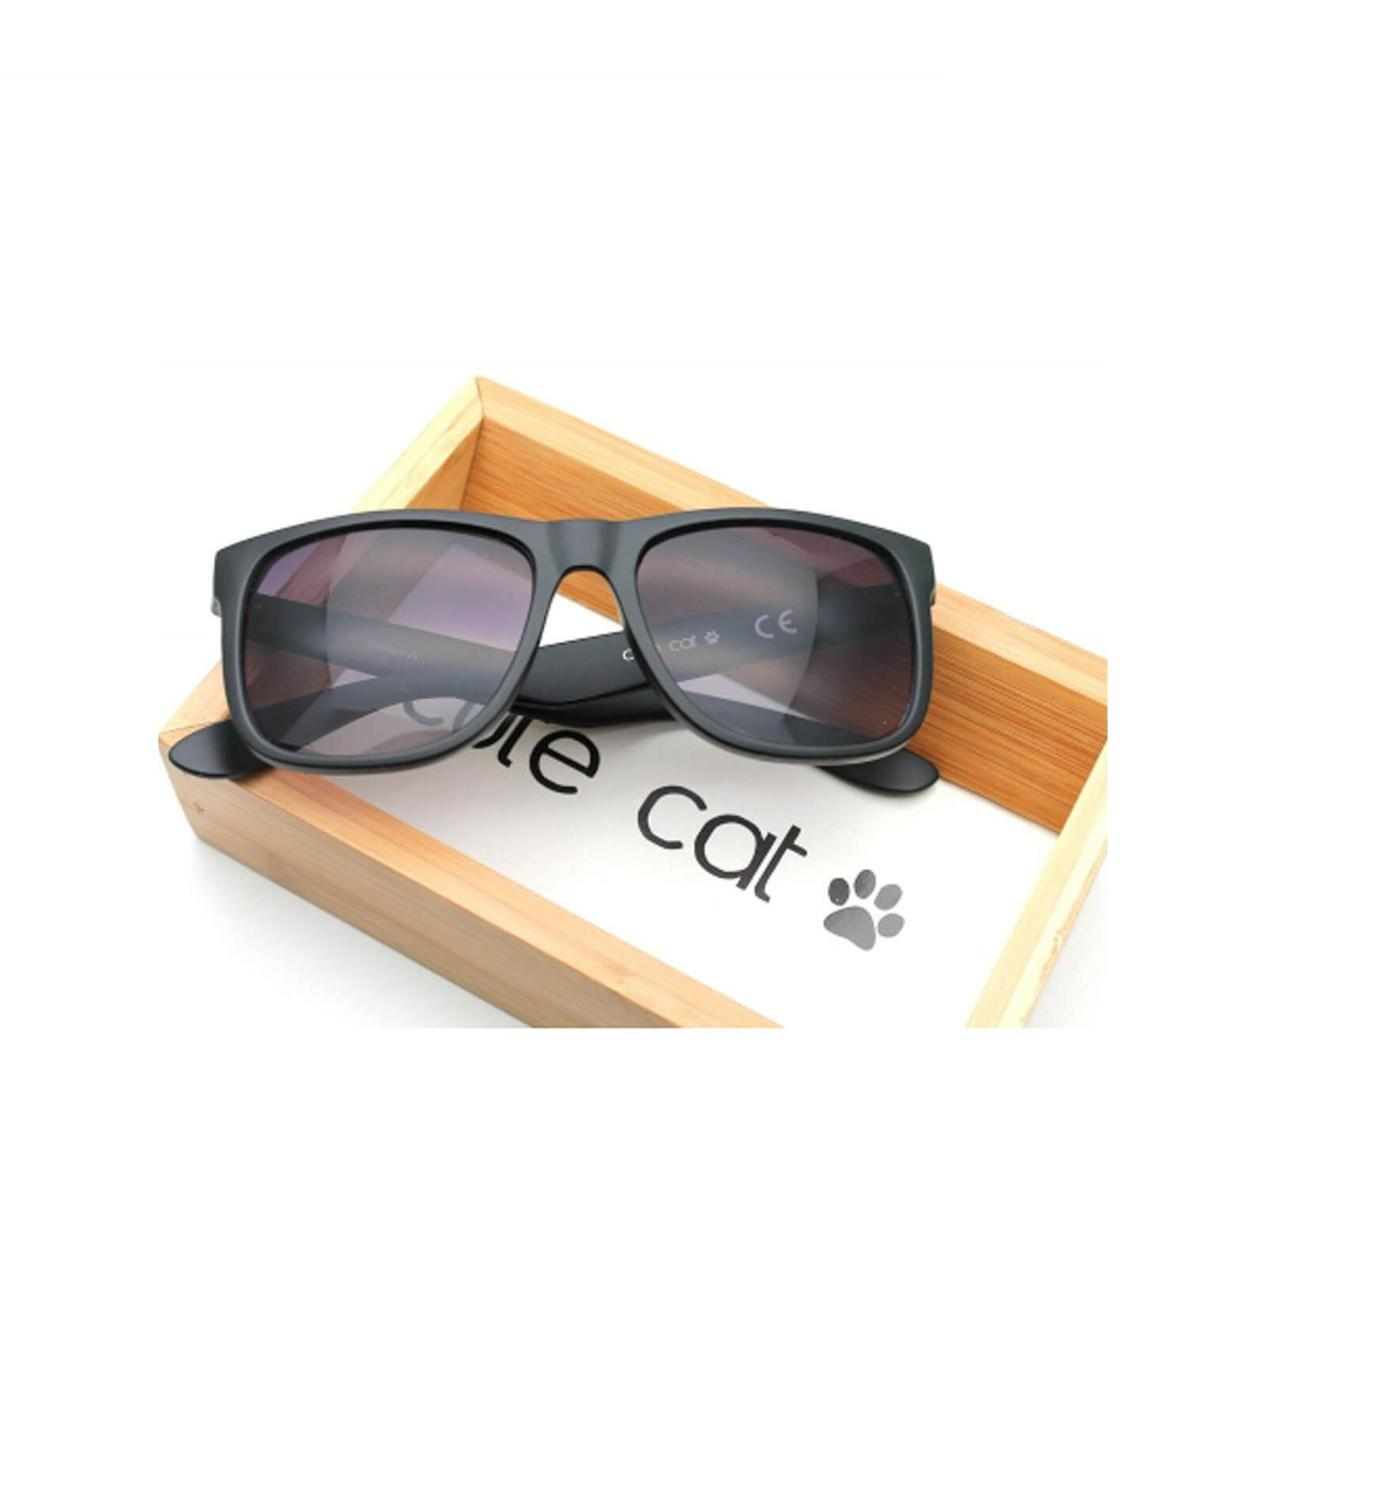 Cute Cat Eyewear Rayban Desing Made In Turkey Justin  Uv400  Organic Sunglasses  World Wide Free Shipping